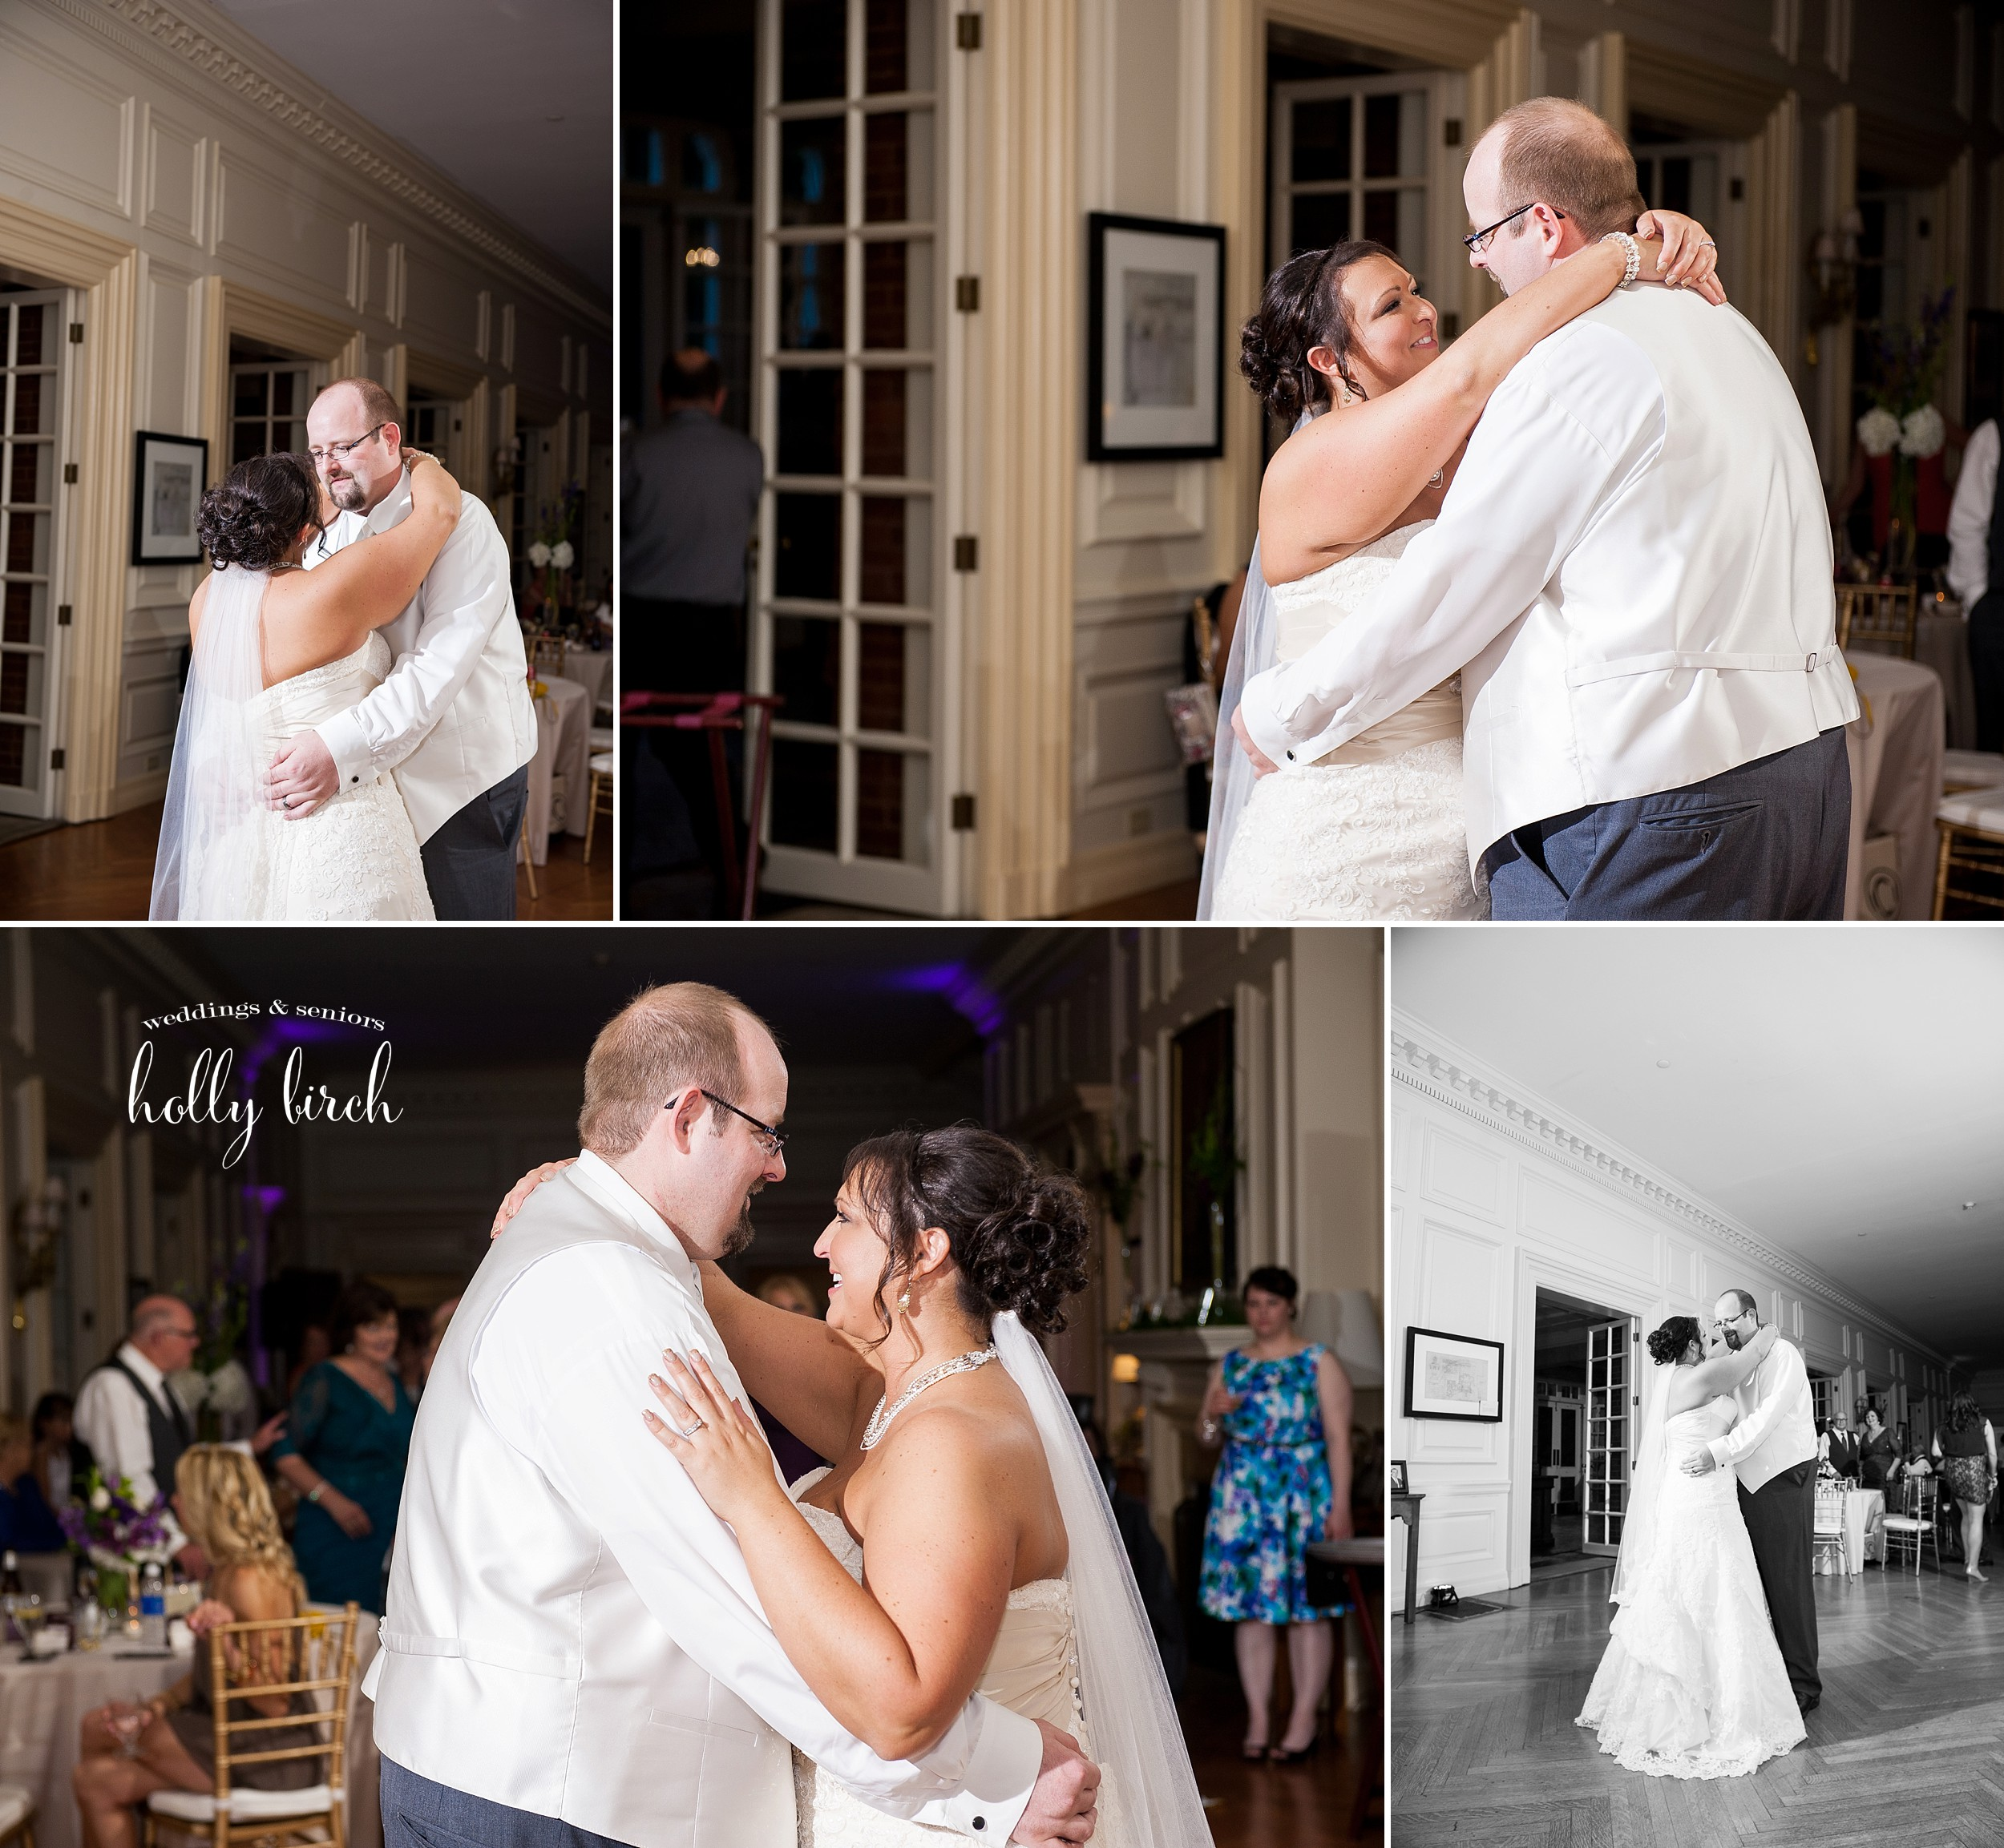 first dance Thinking Out Loud Ed Sheeran